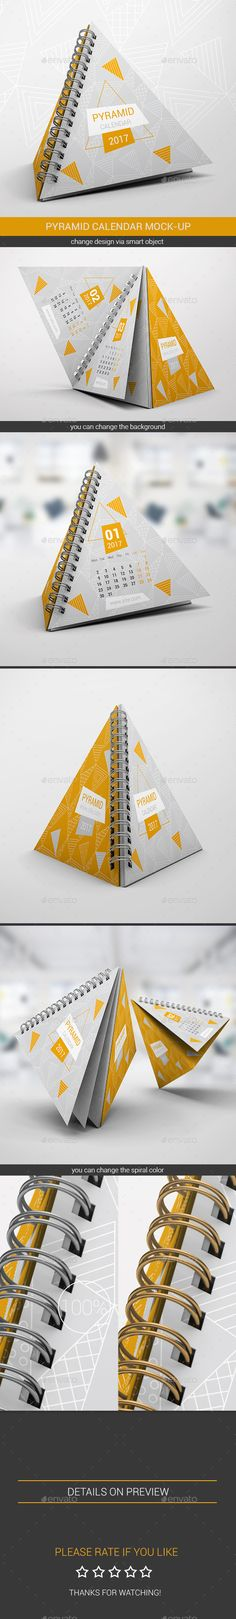 Pyramid Calendar Mock-Up - Miscellaneous Print. https://graphicriver.net/item/pyramid-calendar-mockup/18296432?ref=fisihsani